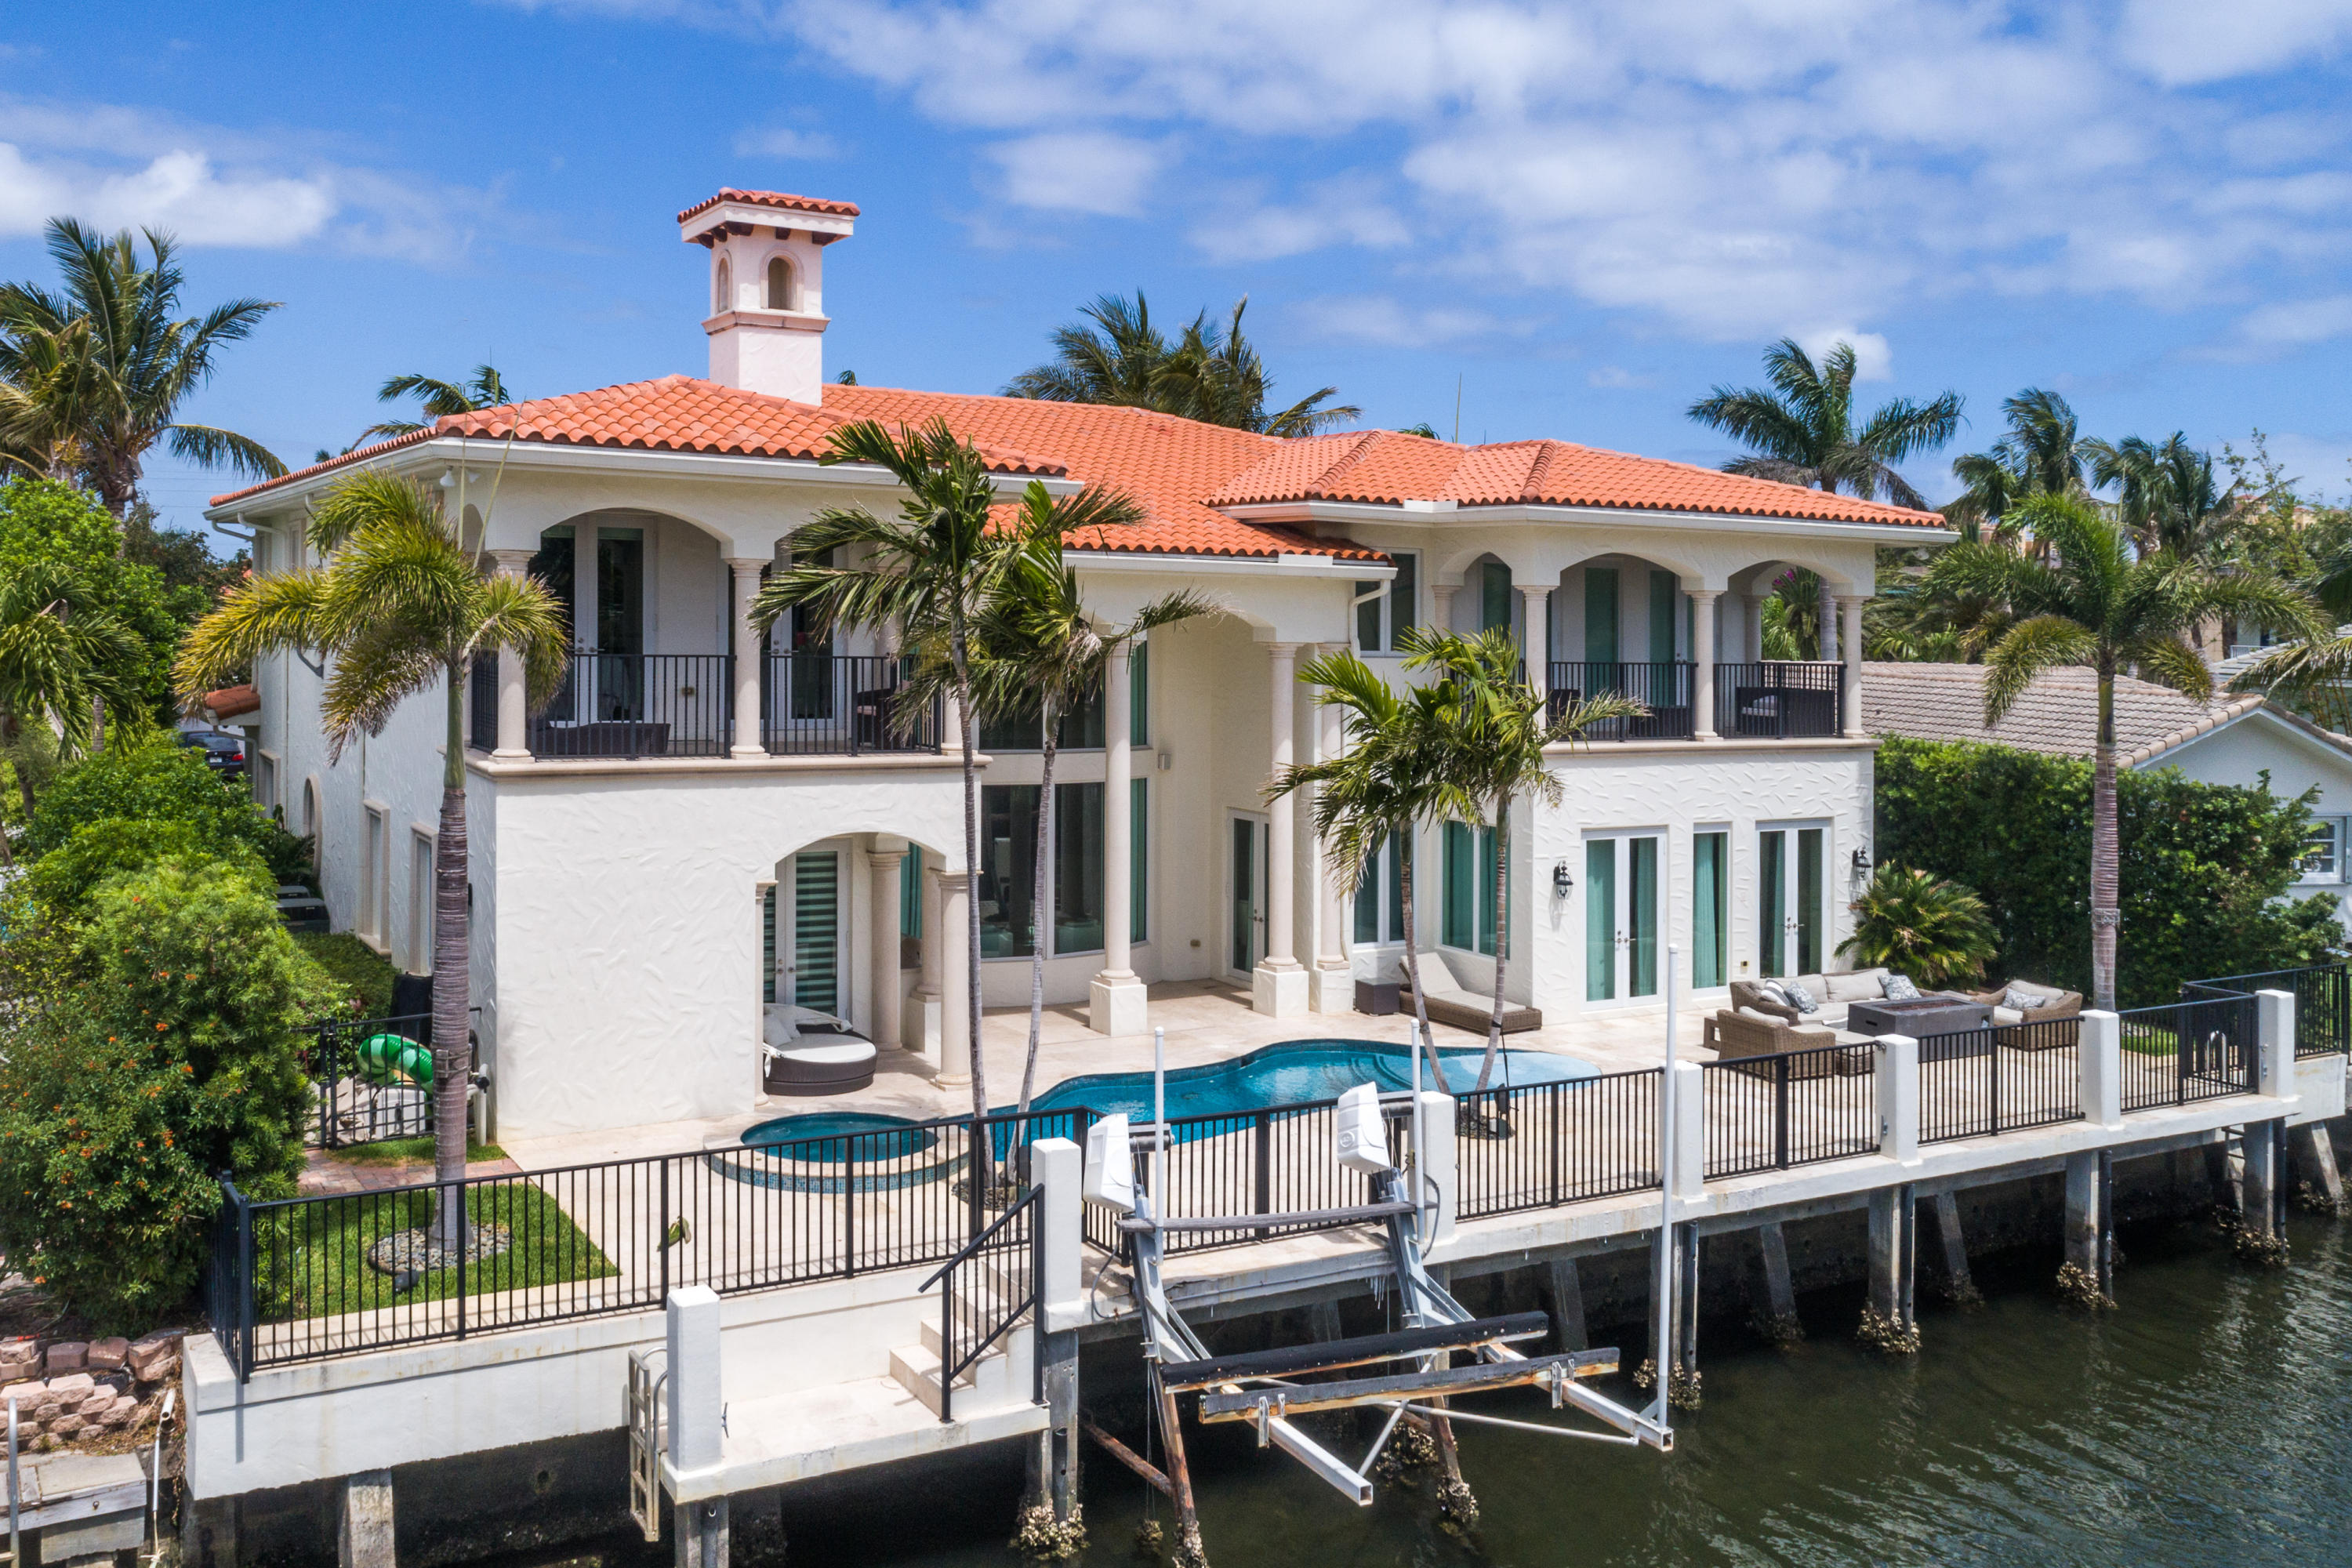 Home for sale in Bel Marra Boca Raton Florida